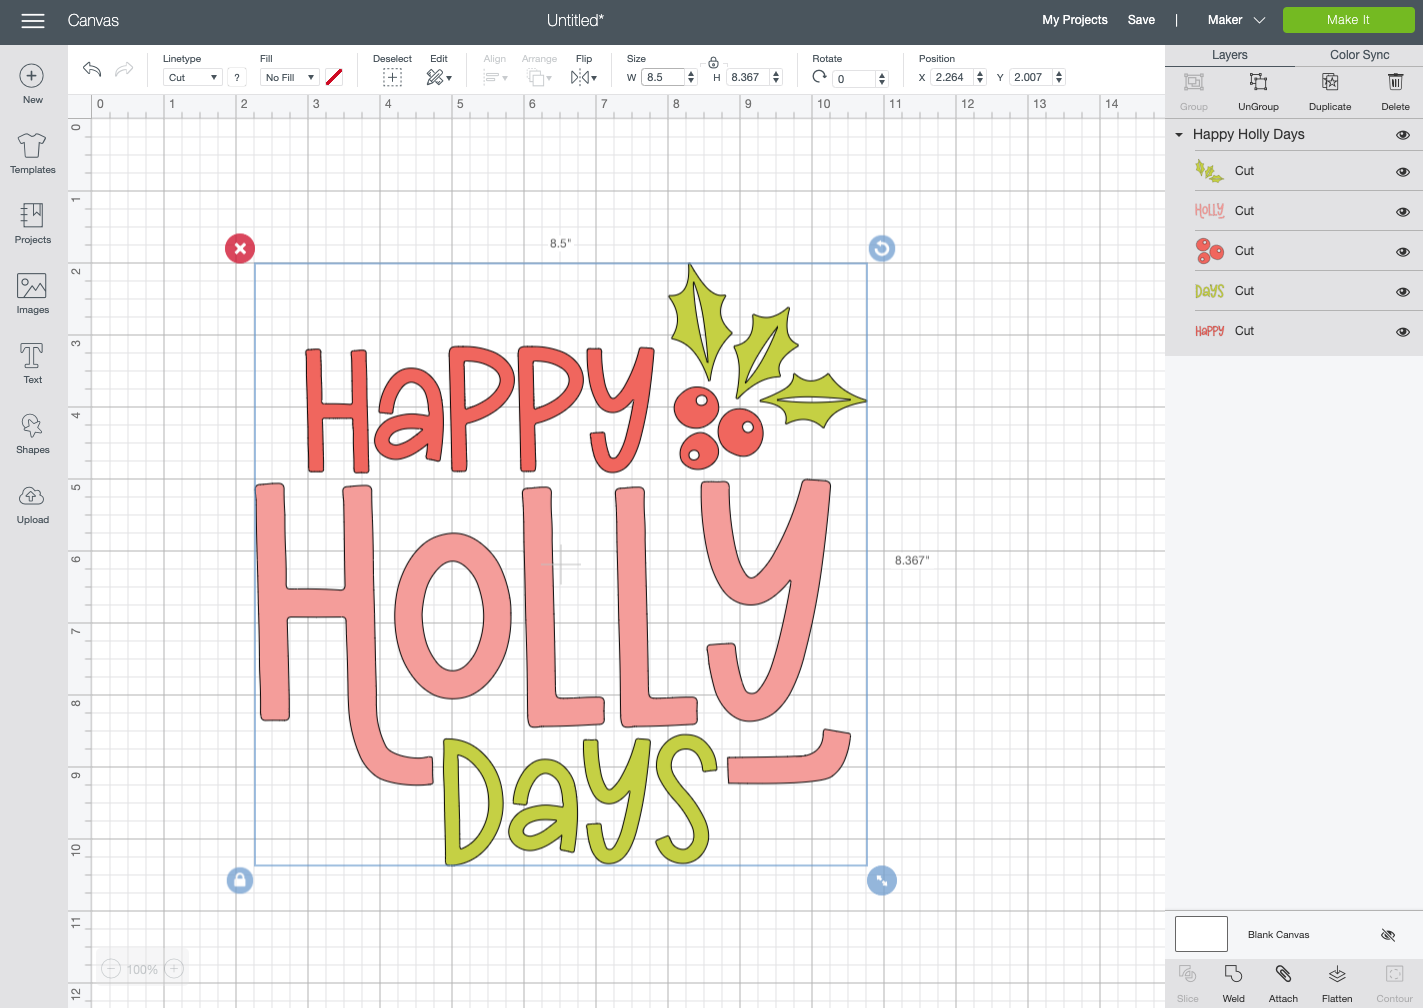 Resized image in Cricut Design Space.